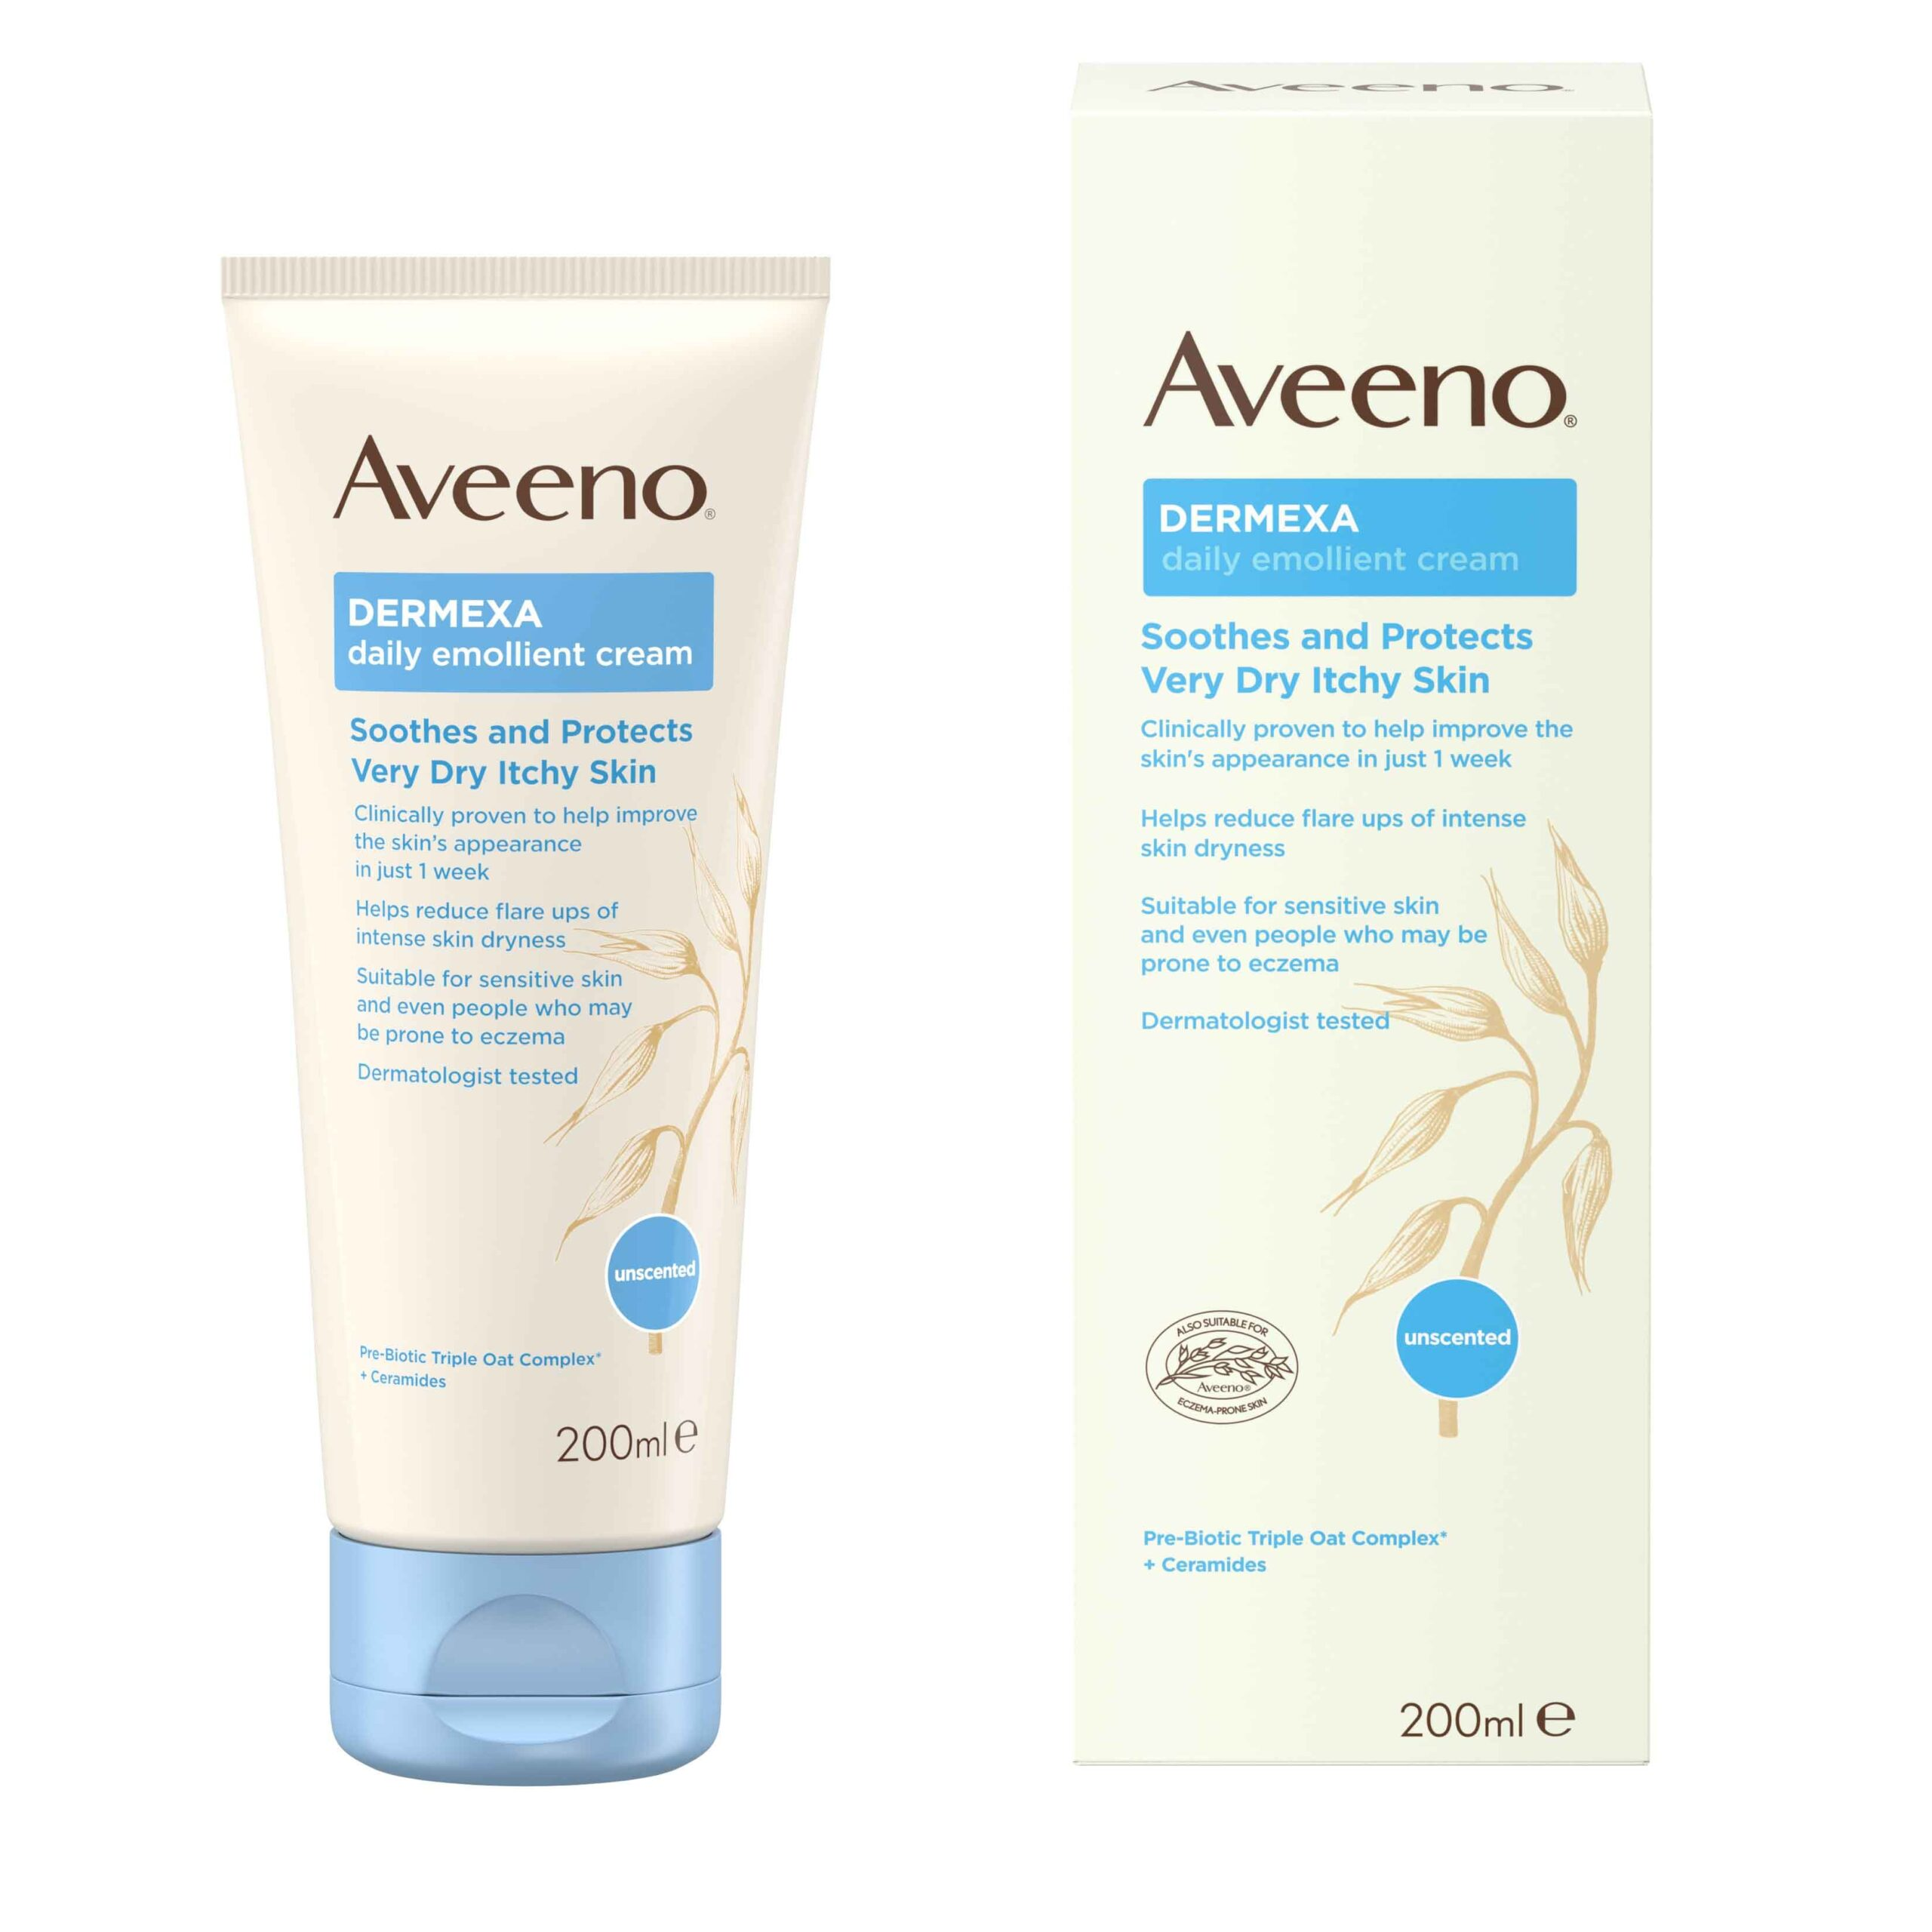 AVEENO® Dermexa Daily Emollient Cream 200ml